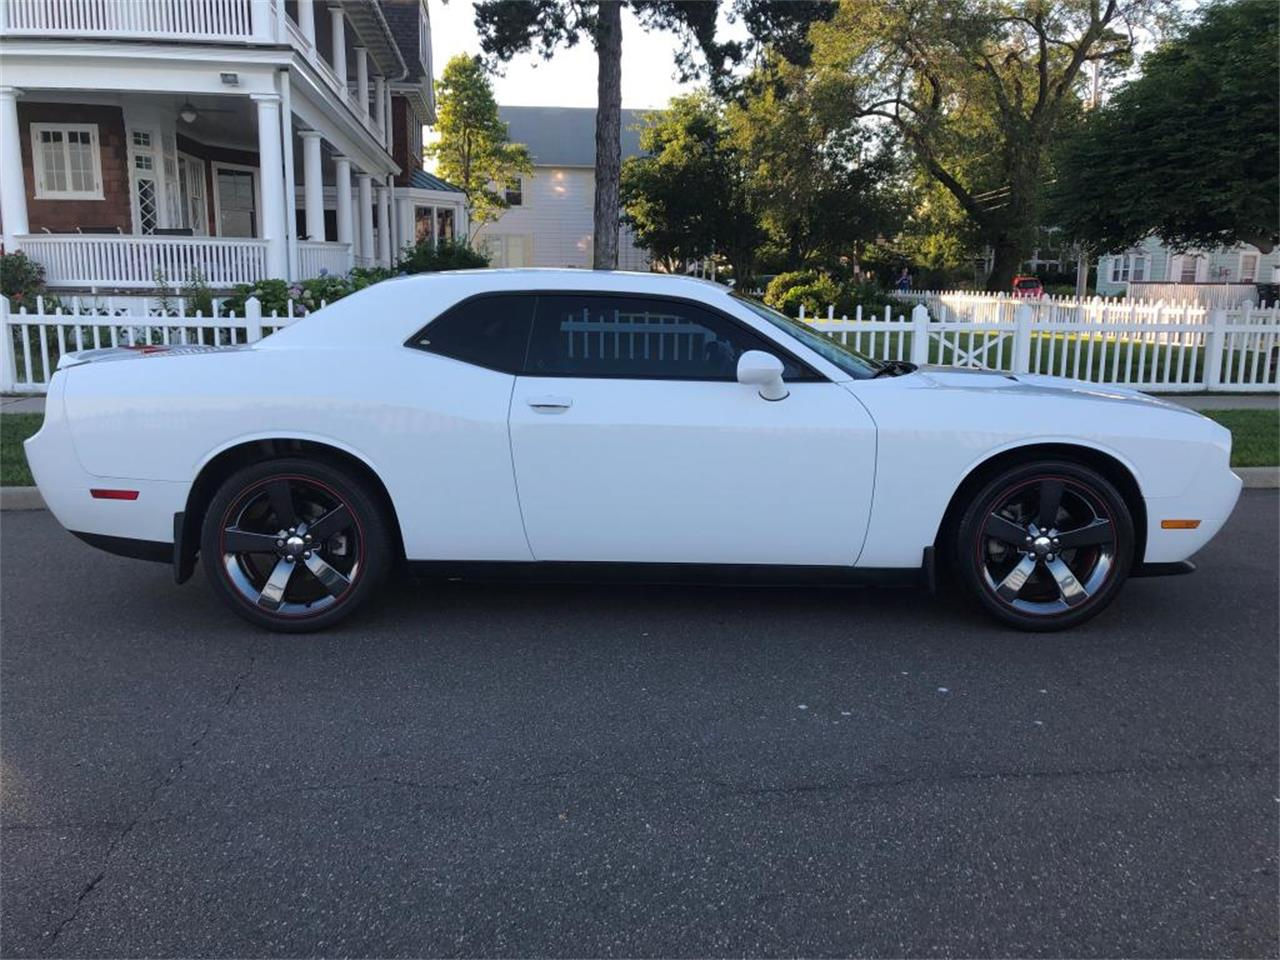 2012 Dodge Challenger (CC-1233360) for sale in Milford City, Connecticut